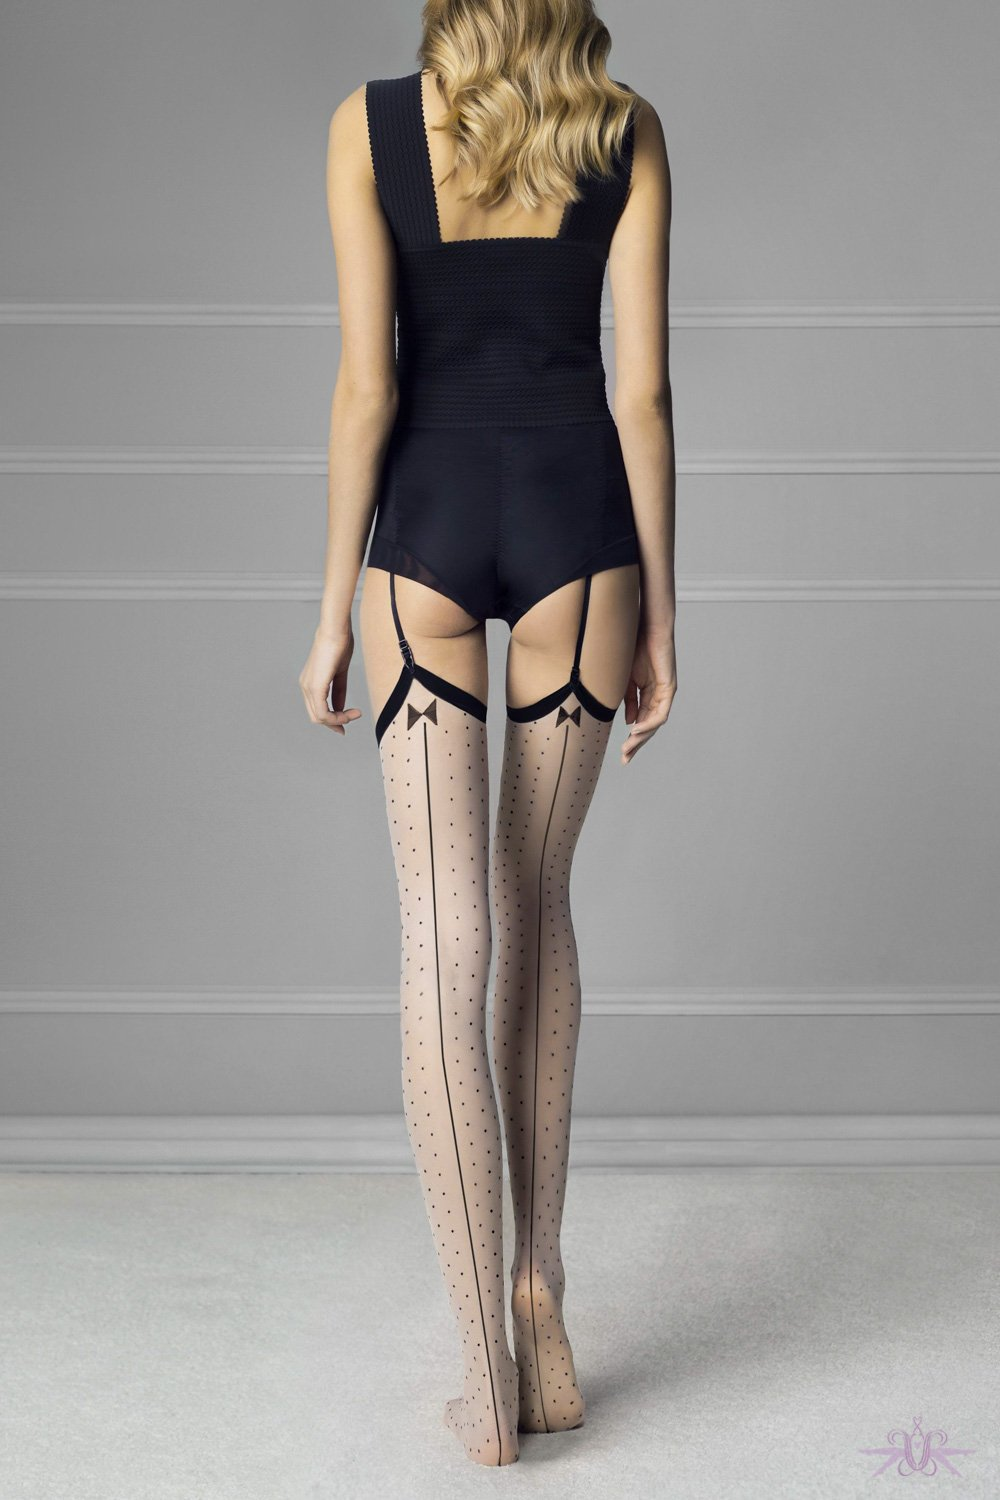 Fiore Gossip Spotted Stockings